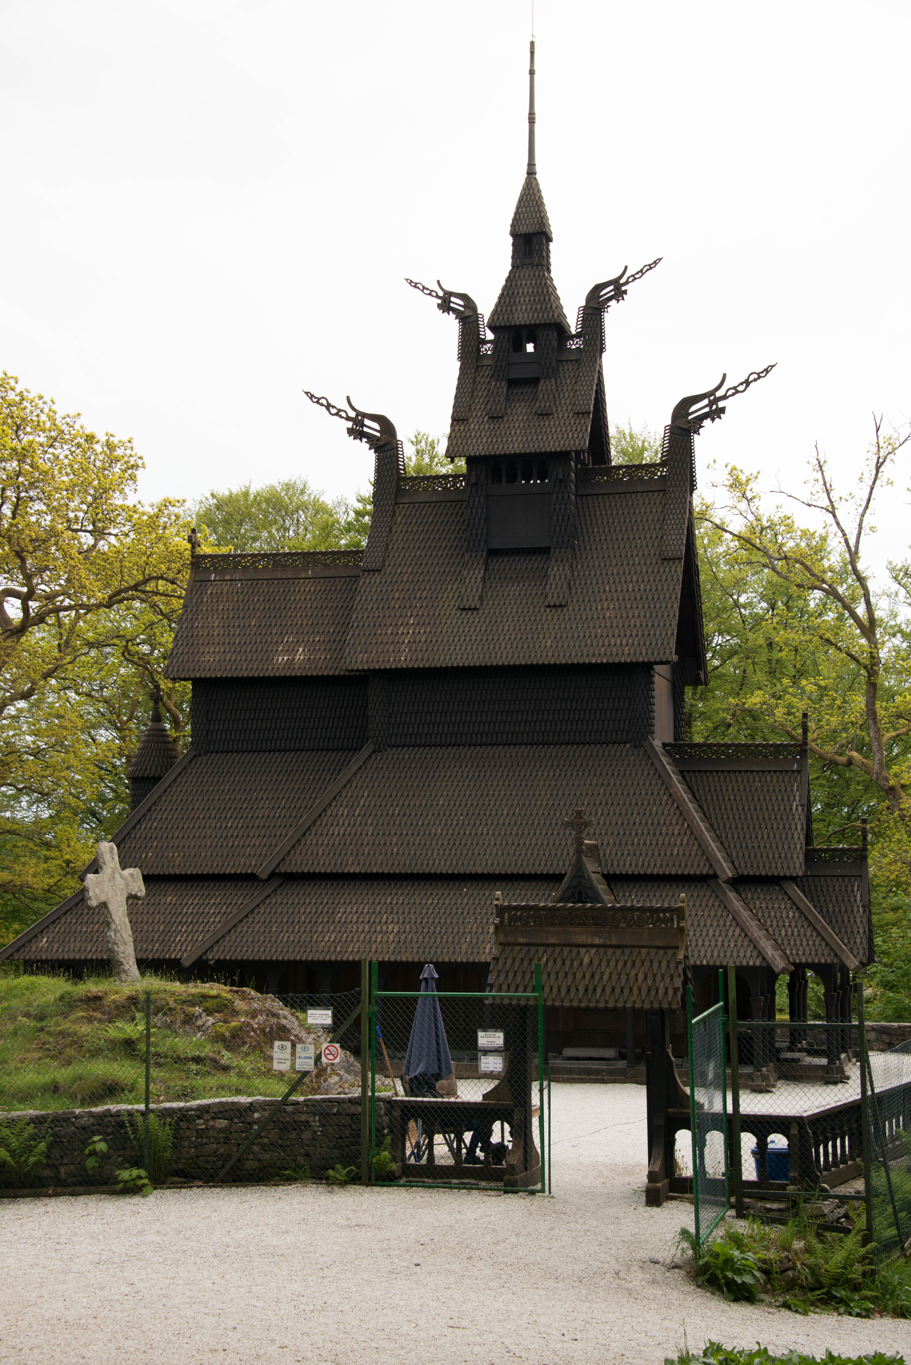 The Fantost Stave Church, Bergen